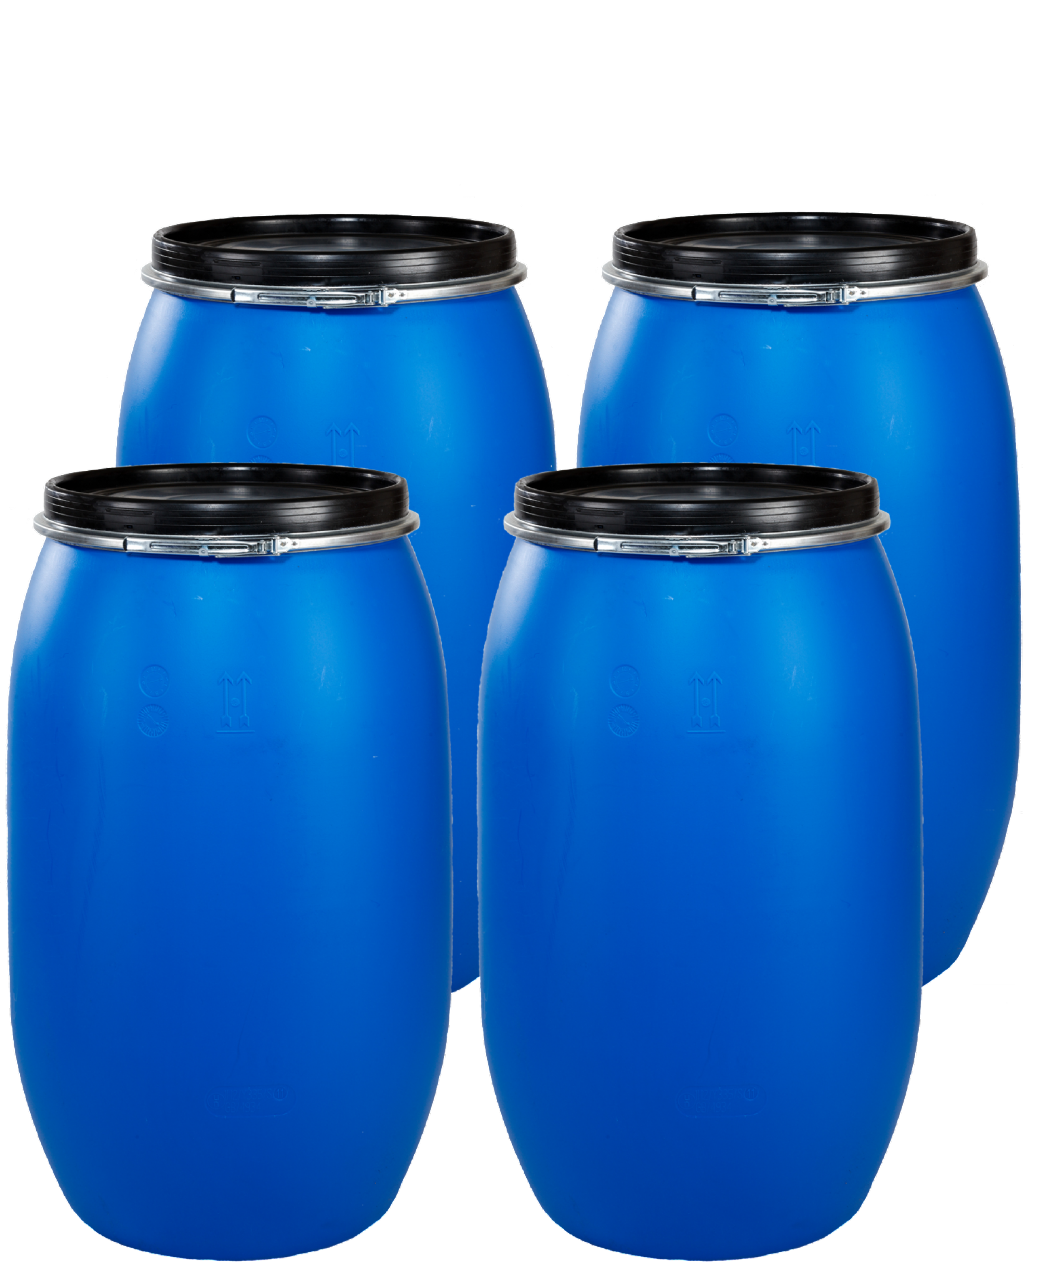 30 Litre Full Open Top Plastic Drum - Pack of 4